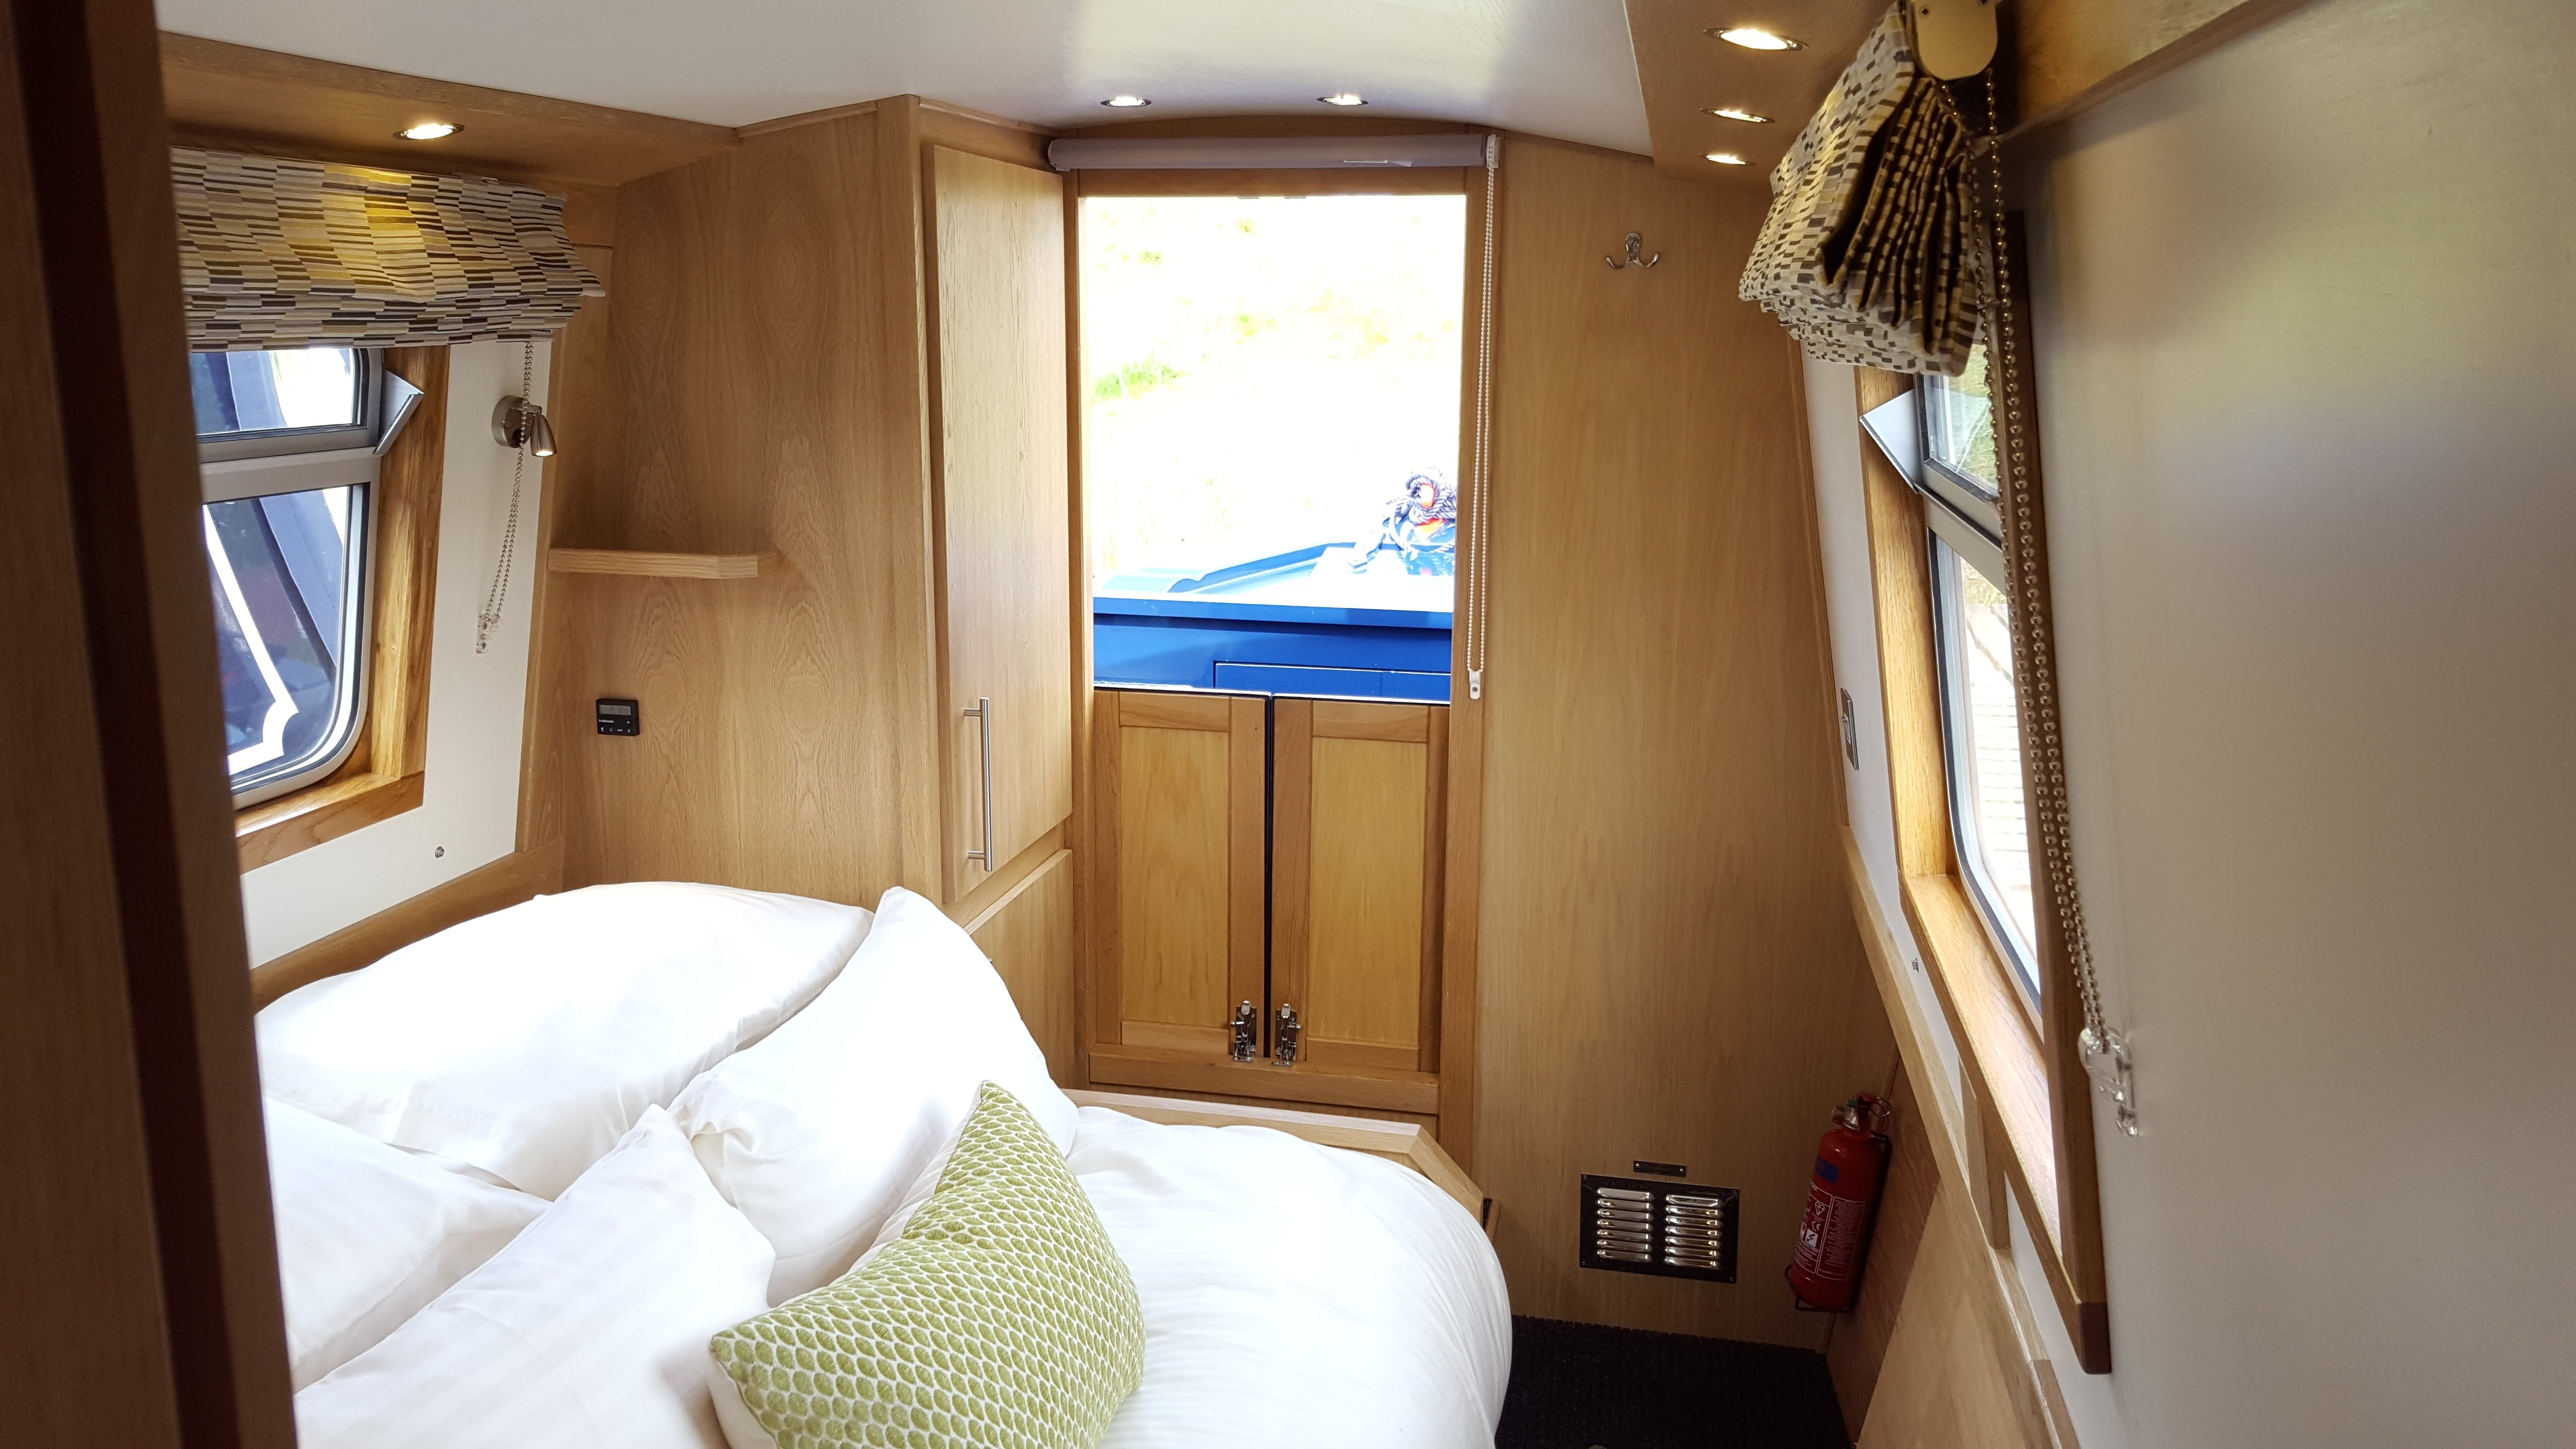 Narrowboat Hire - Luxury Narrowboat Hire | Aqua Narrow Boats